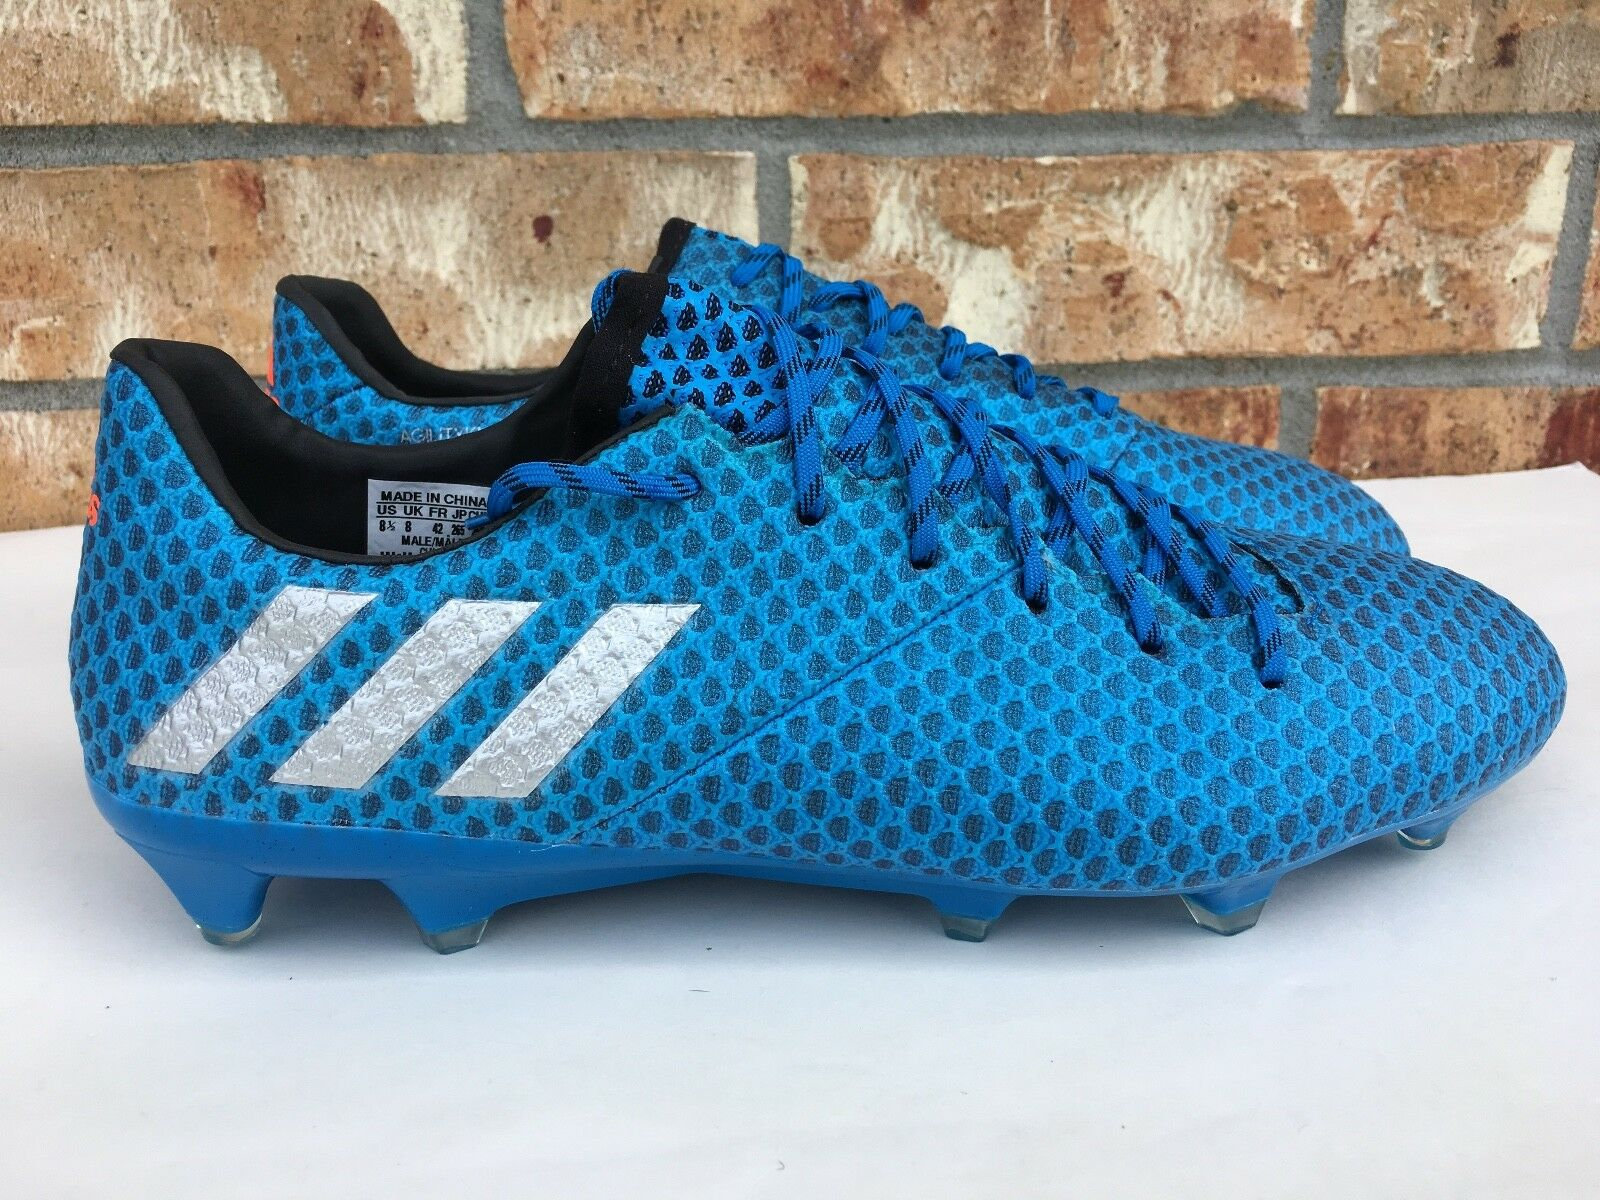 Men's Adidas Messi 16.1 FG AG Cleats Firm Ground Soccer Boots Cleats AG Blue AQ3109 b597fc